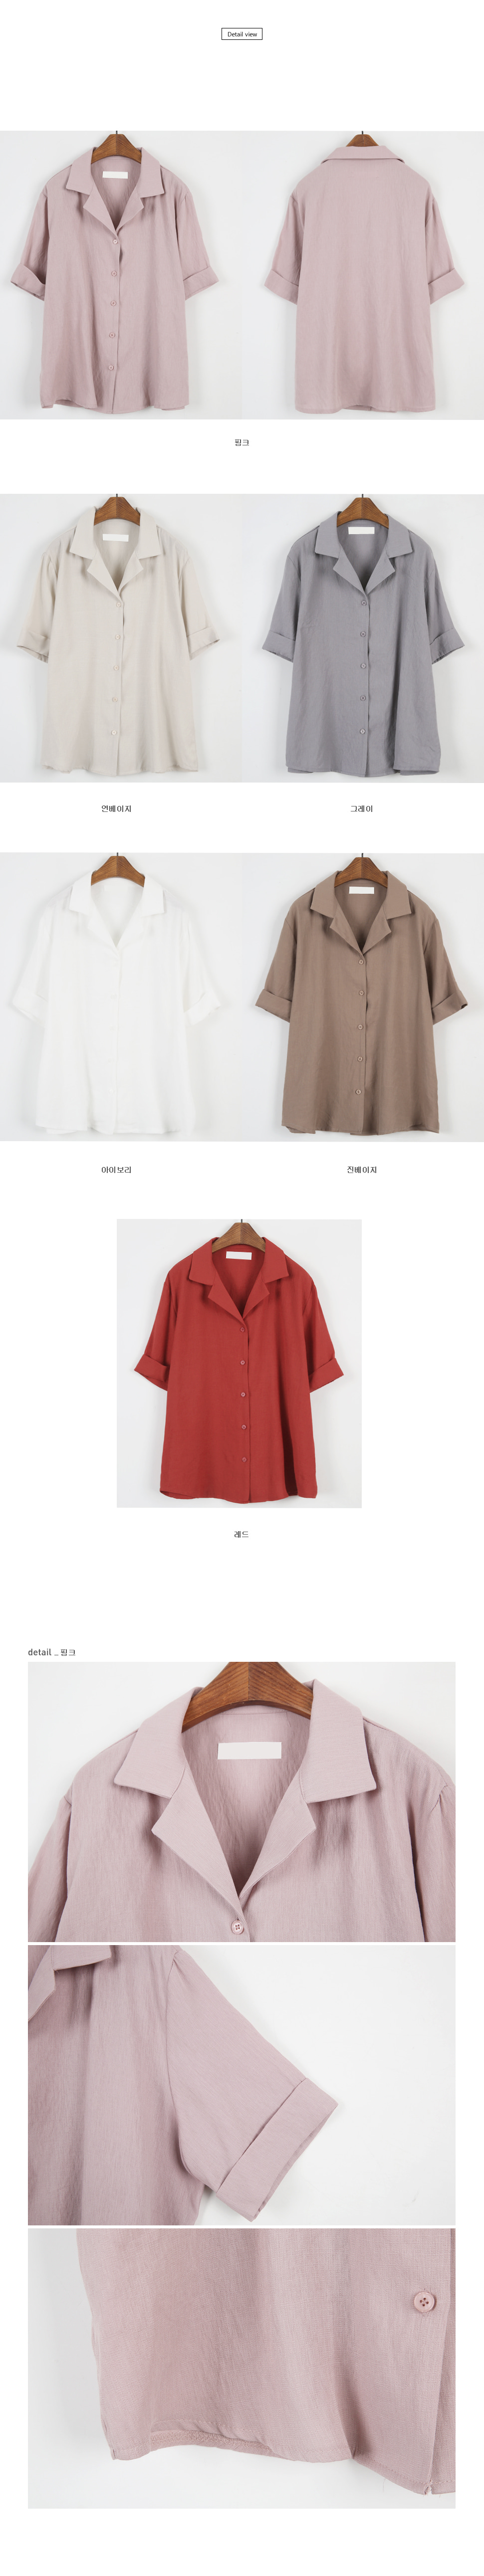 Roll-up color blouse